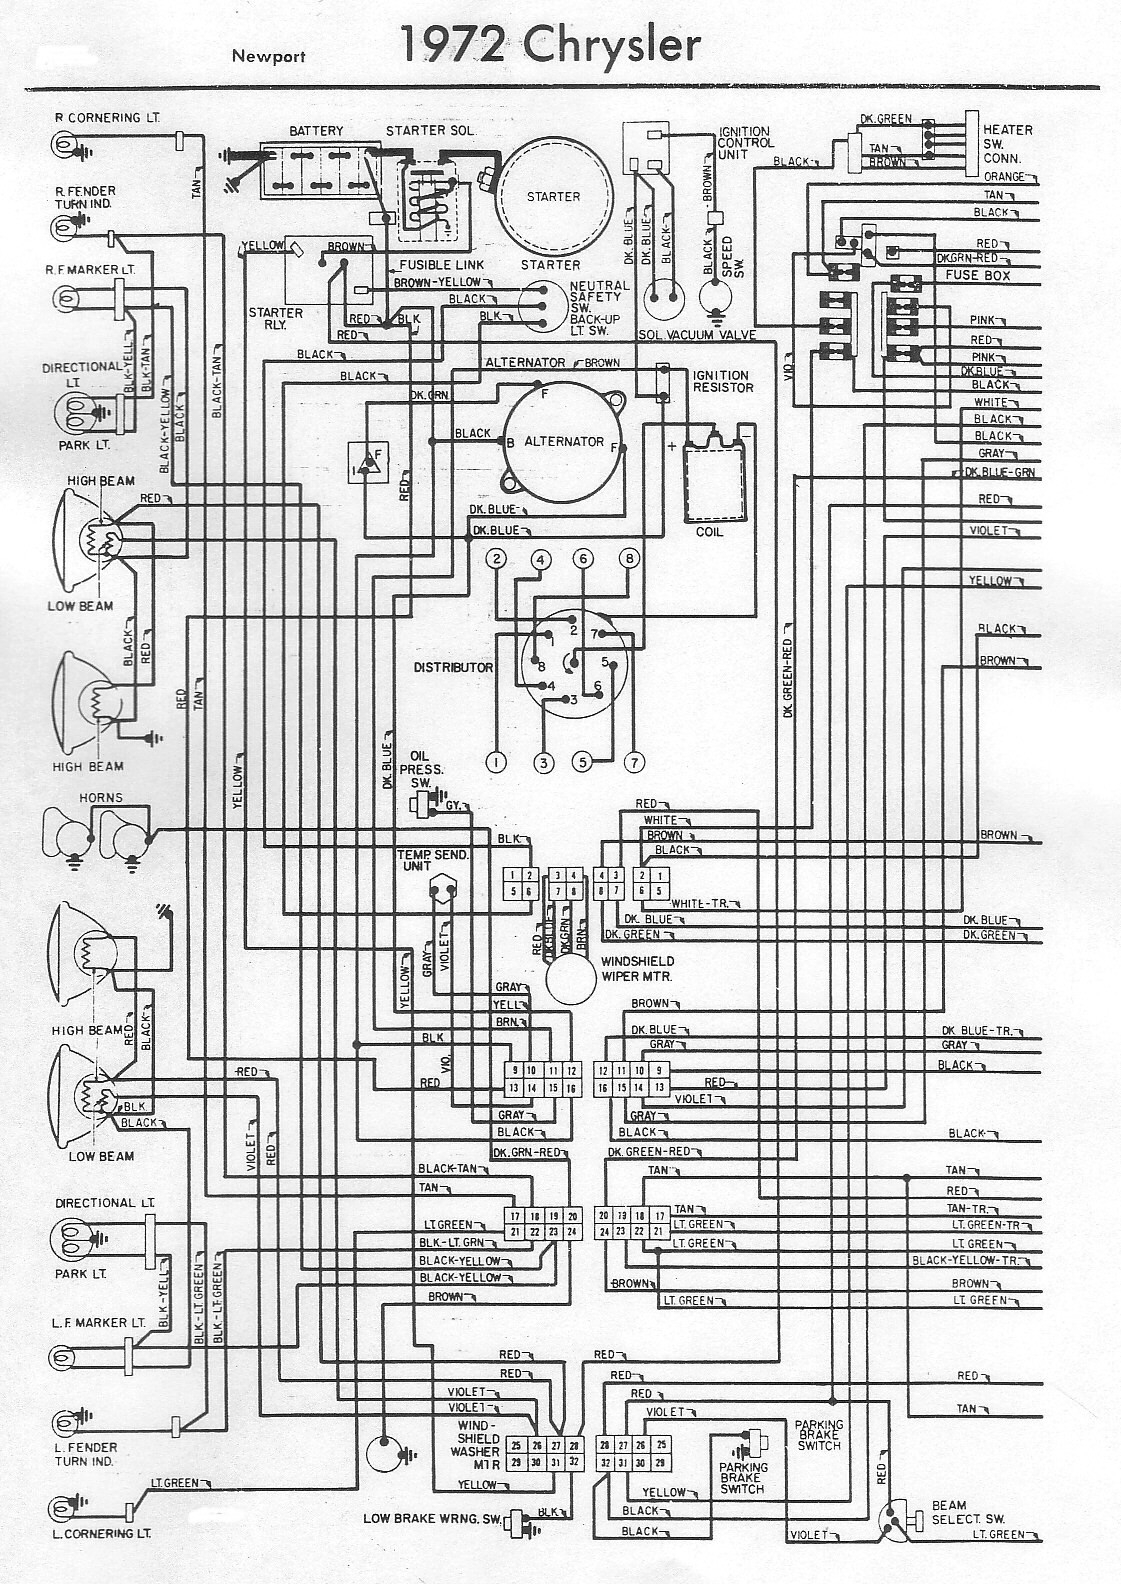 1956 Chrysler Wiring Diagram Schematic Diagrams 1959 Windsor Residential Electrical Symbols U2022 Chevrolet